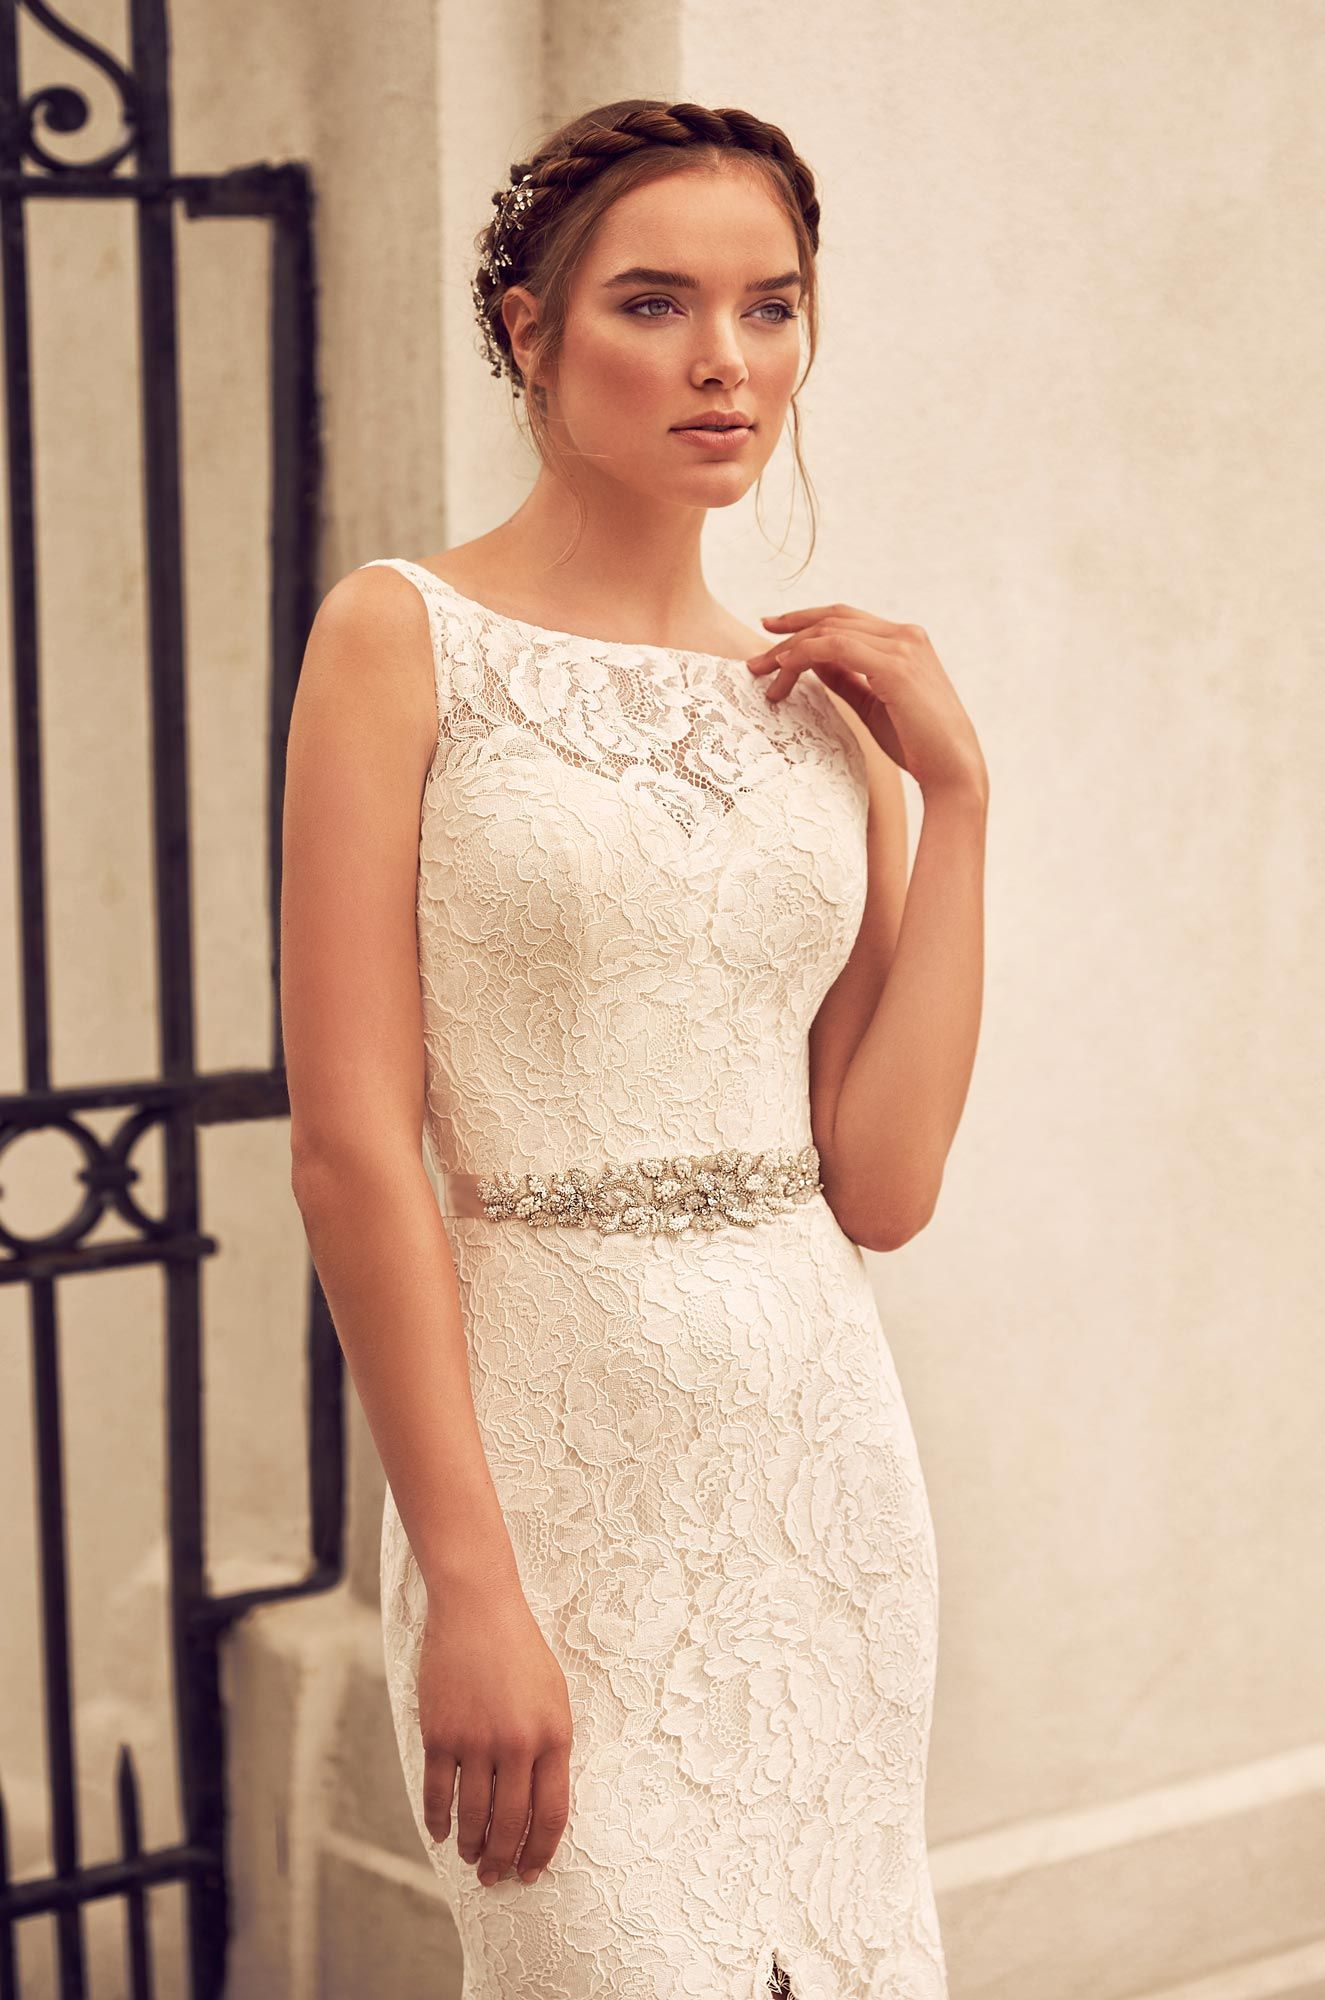 Split front lace wedding dress style lace bodice paloma